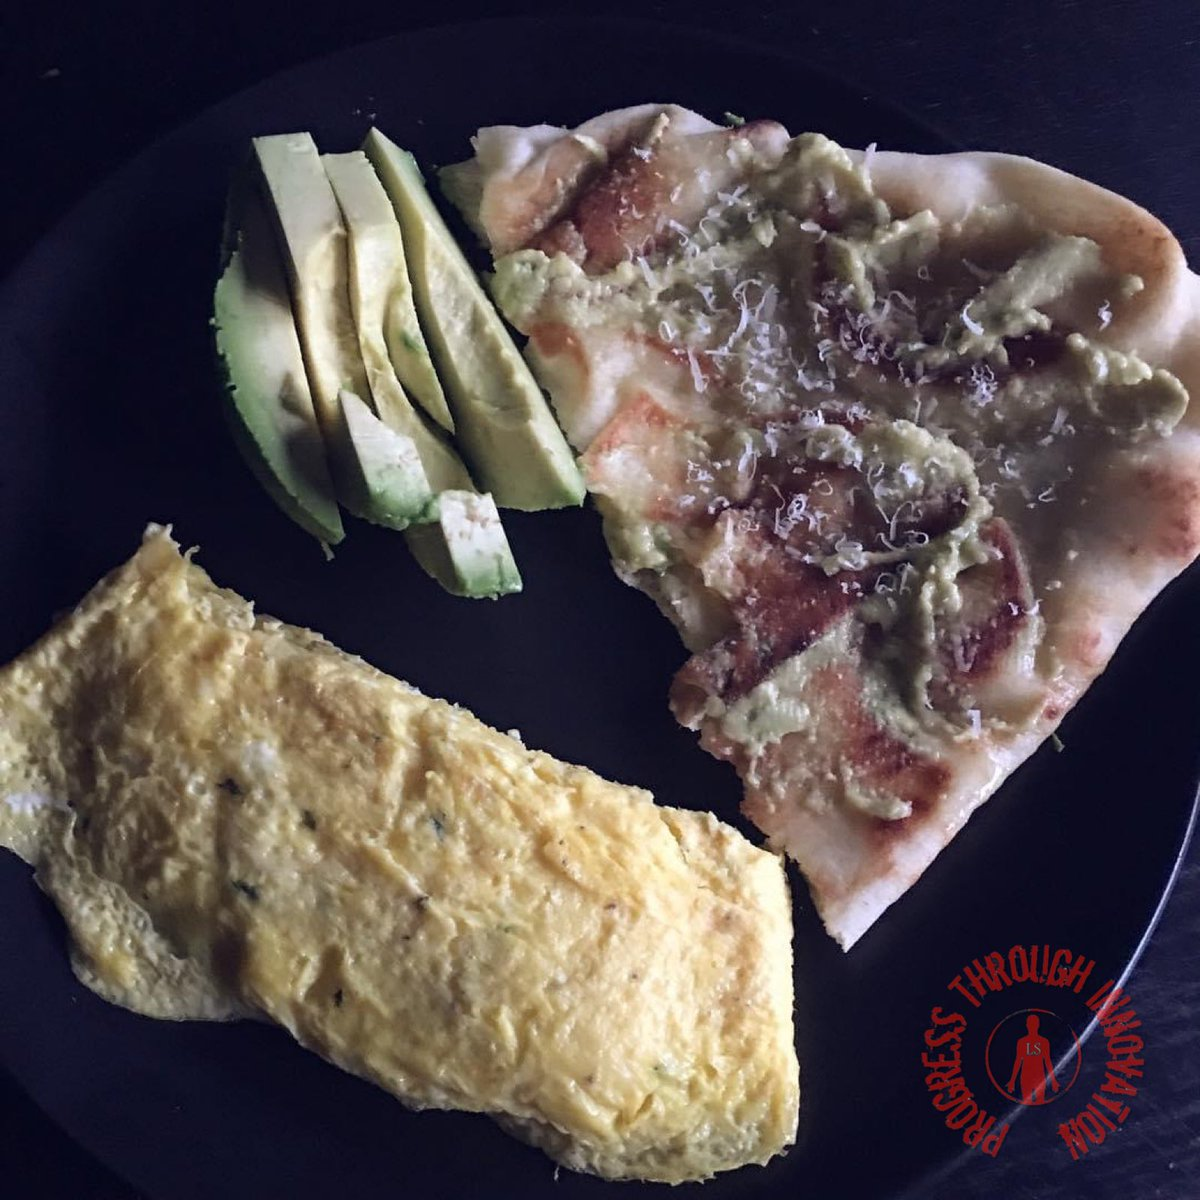 Breakfast idea. Omelette with avocado, naan, Parmesan cheese. Tasty, and quite good for you.  . #fitness #gym #food #lifestyle #progress #muscle #fitnesschef #nutrition #lioisystems #chef #cook #coaching #breakfast